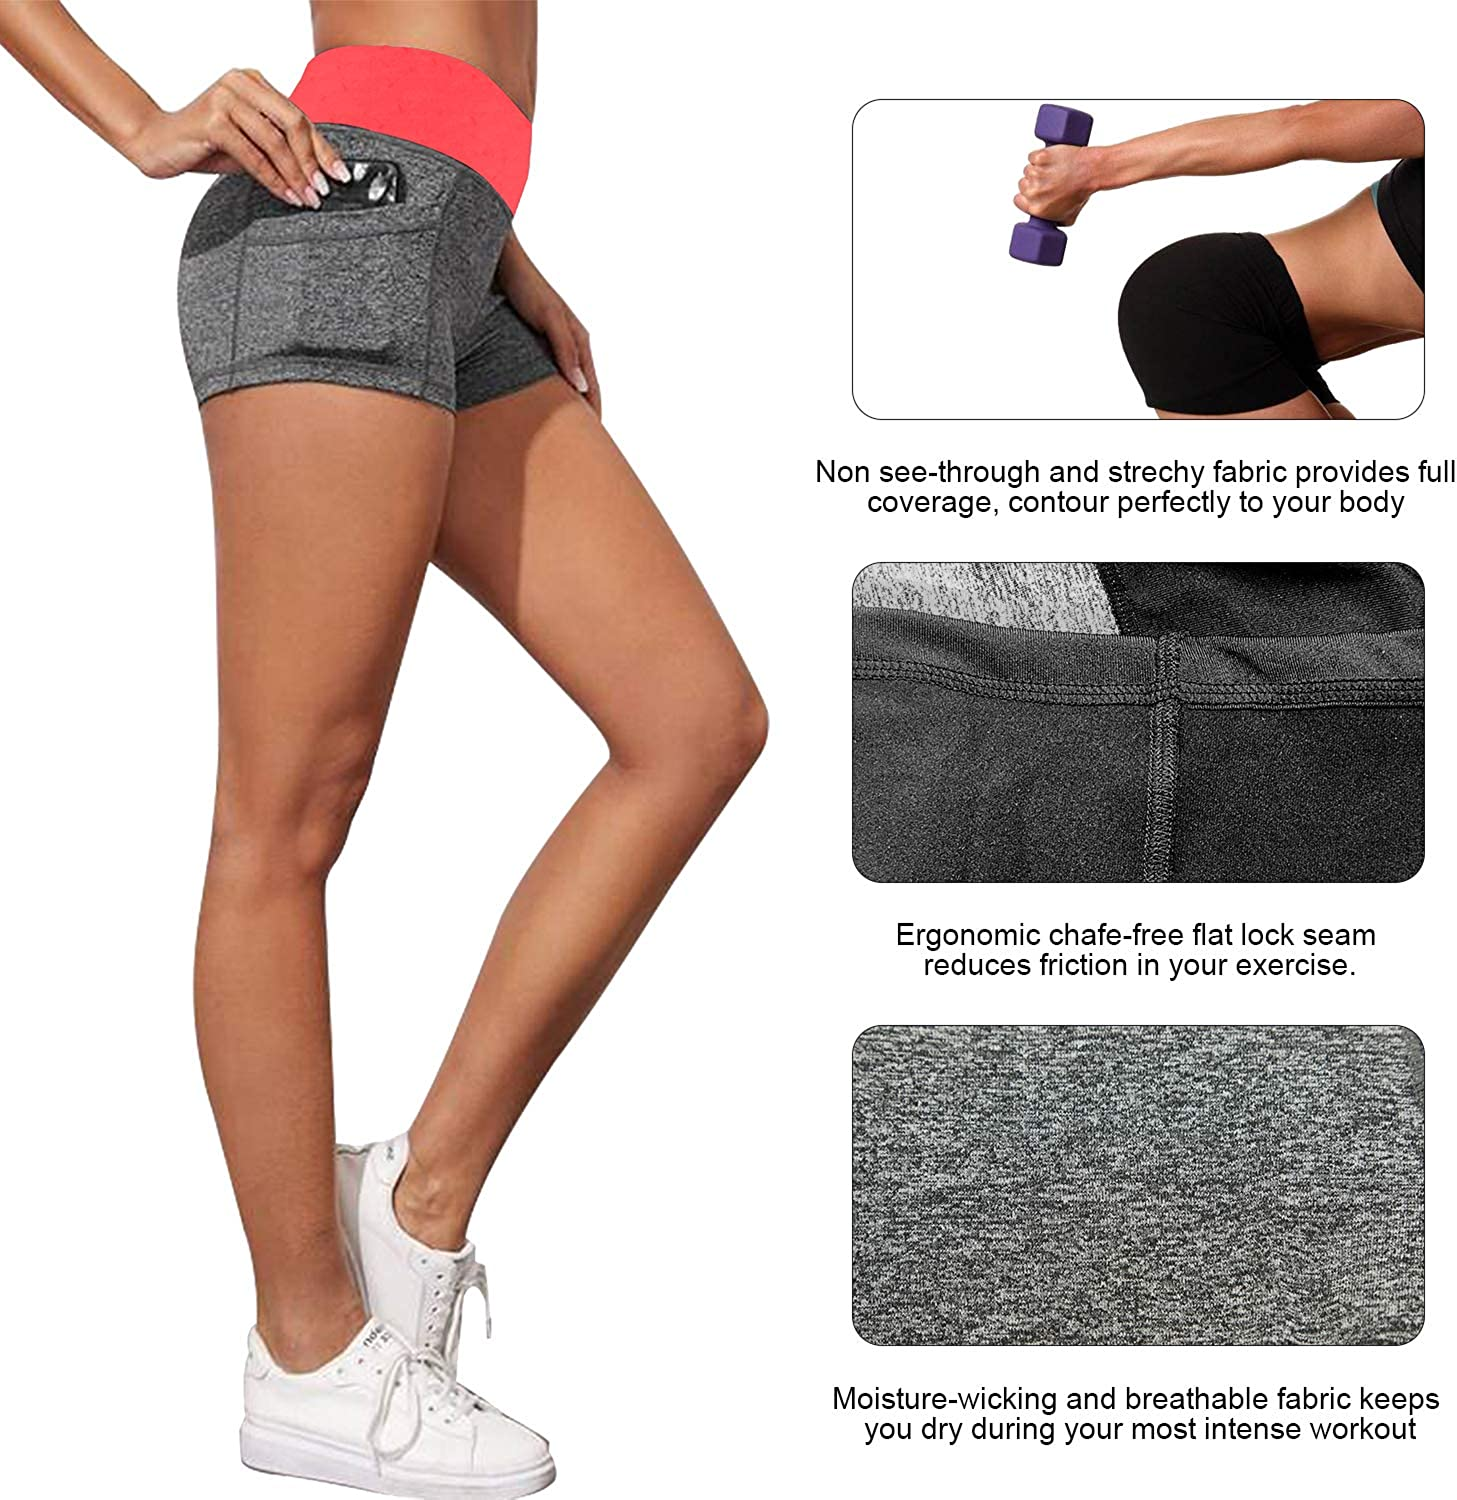 B.BANG Women/'s Elastic Mid Waist Yoga Running Pull-on Sports Short with Side Deep Pockets Workout Shorts